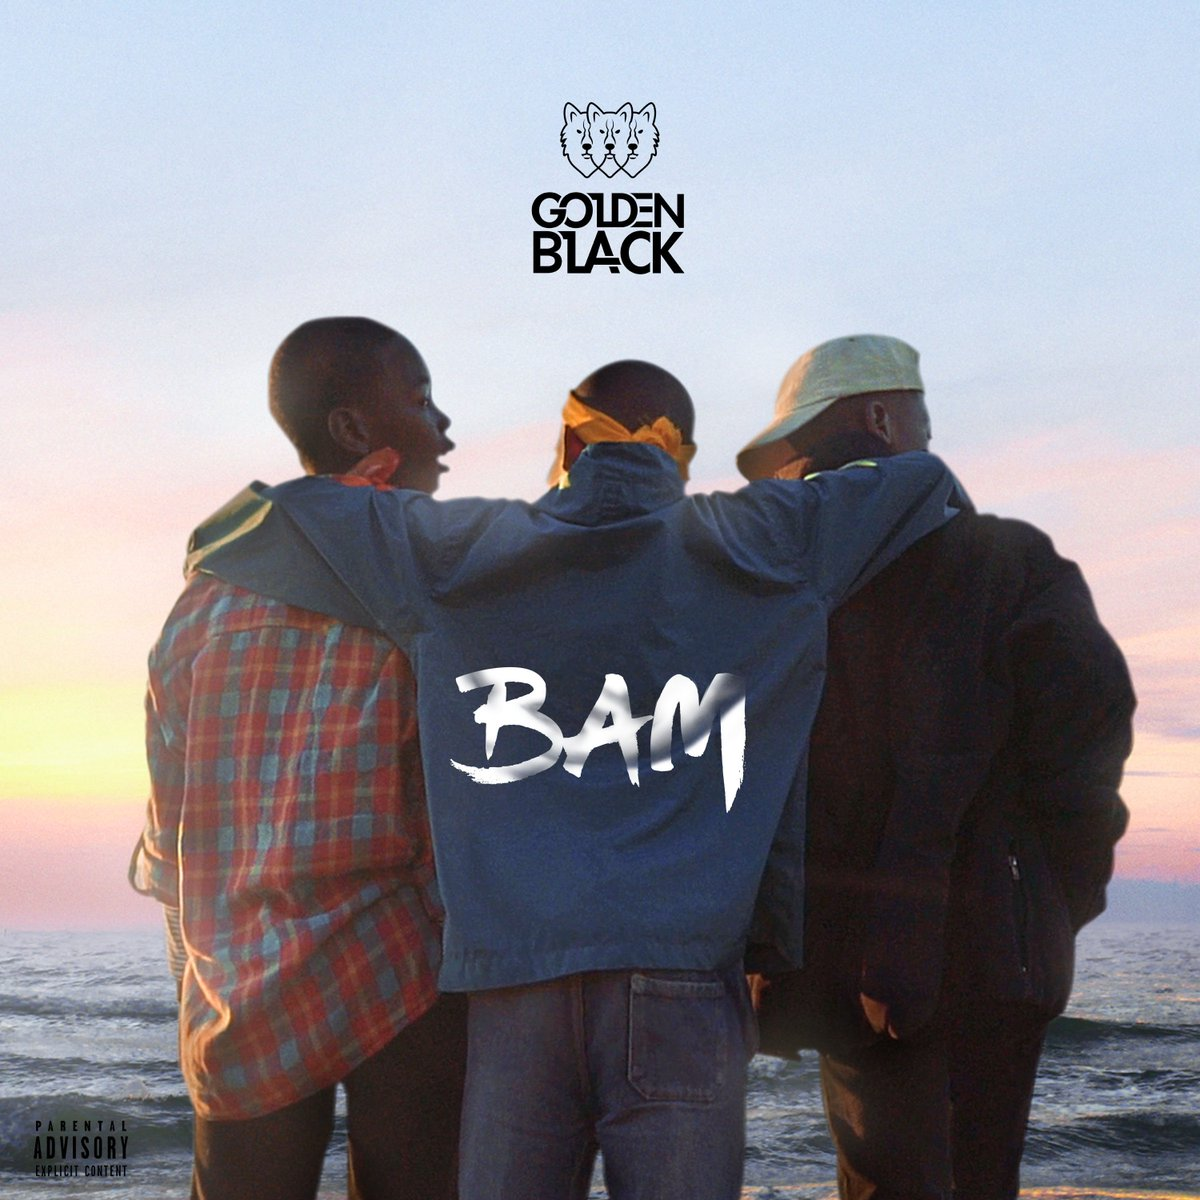 golden black Golden Black Dropping Their First Official Project 'BAM' Tomorrow D1dC mIWwAEQ1YG